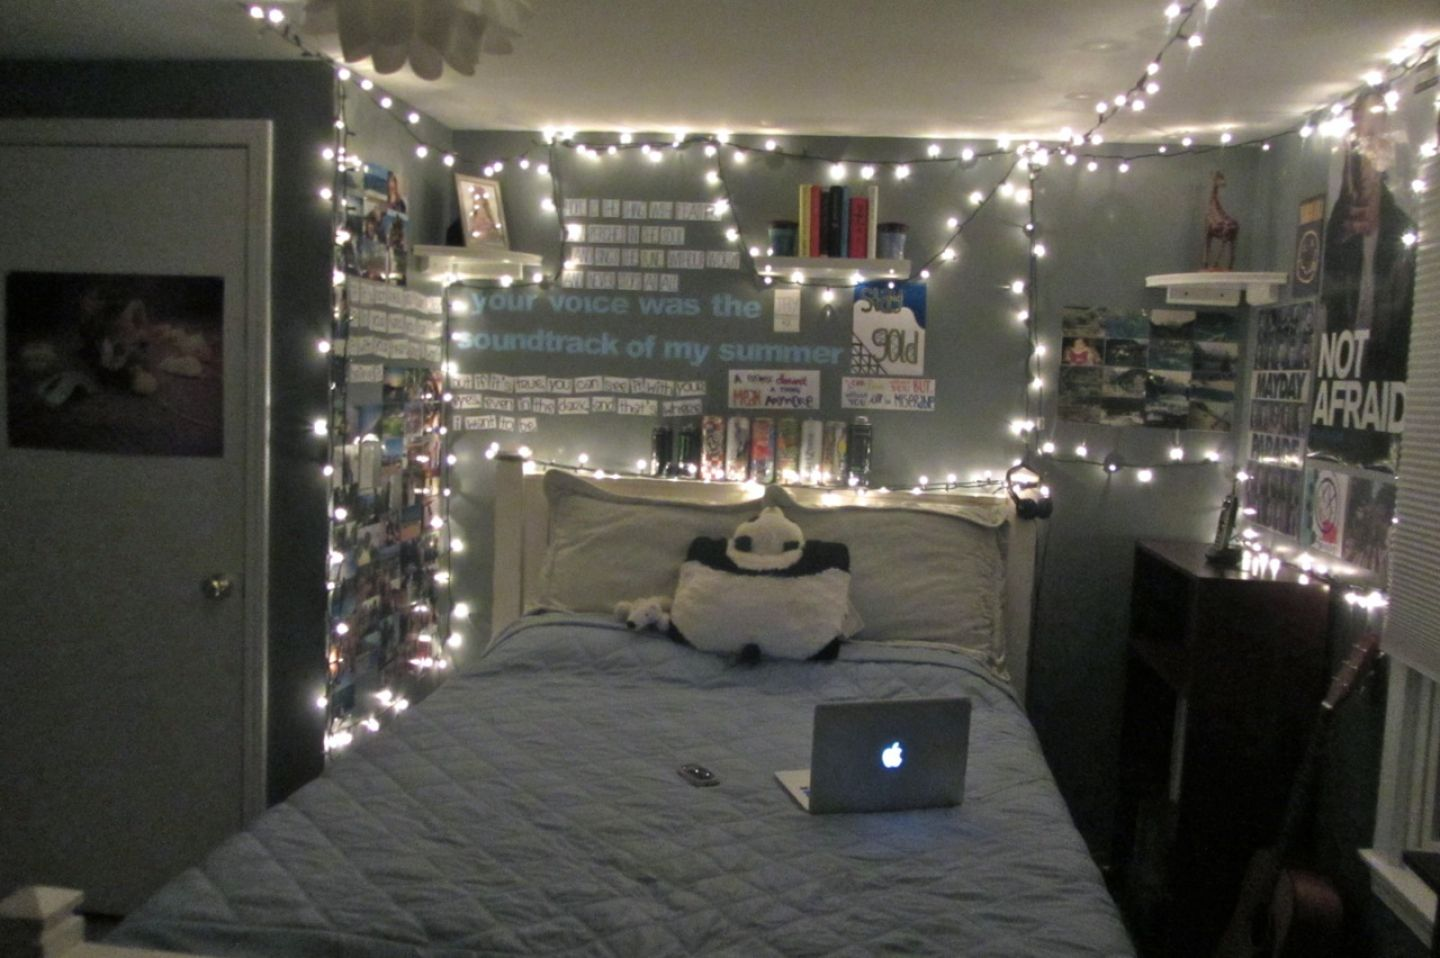 Bedroom christmas lights quotes - Bedroom Tumblr Girl Bedrooms With Awesome Light And Imac On The Bed Cool Bedrooms Tumblr Design